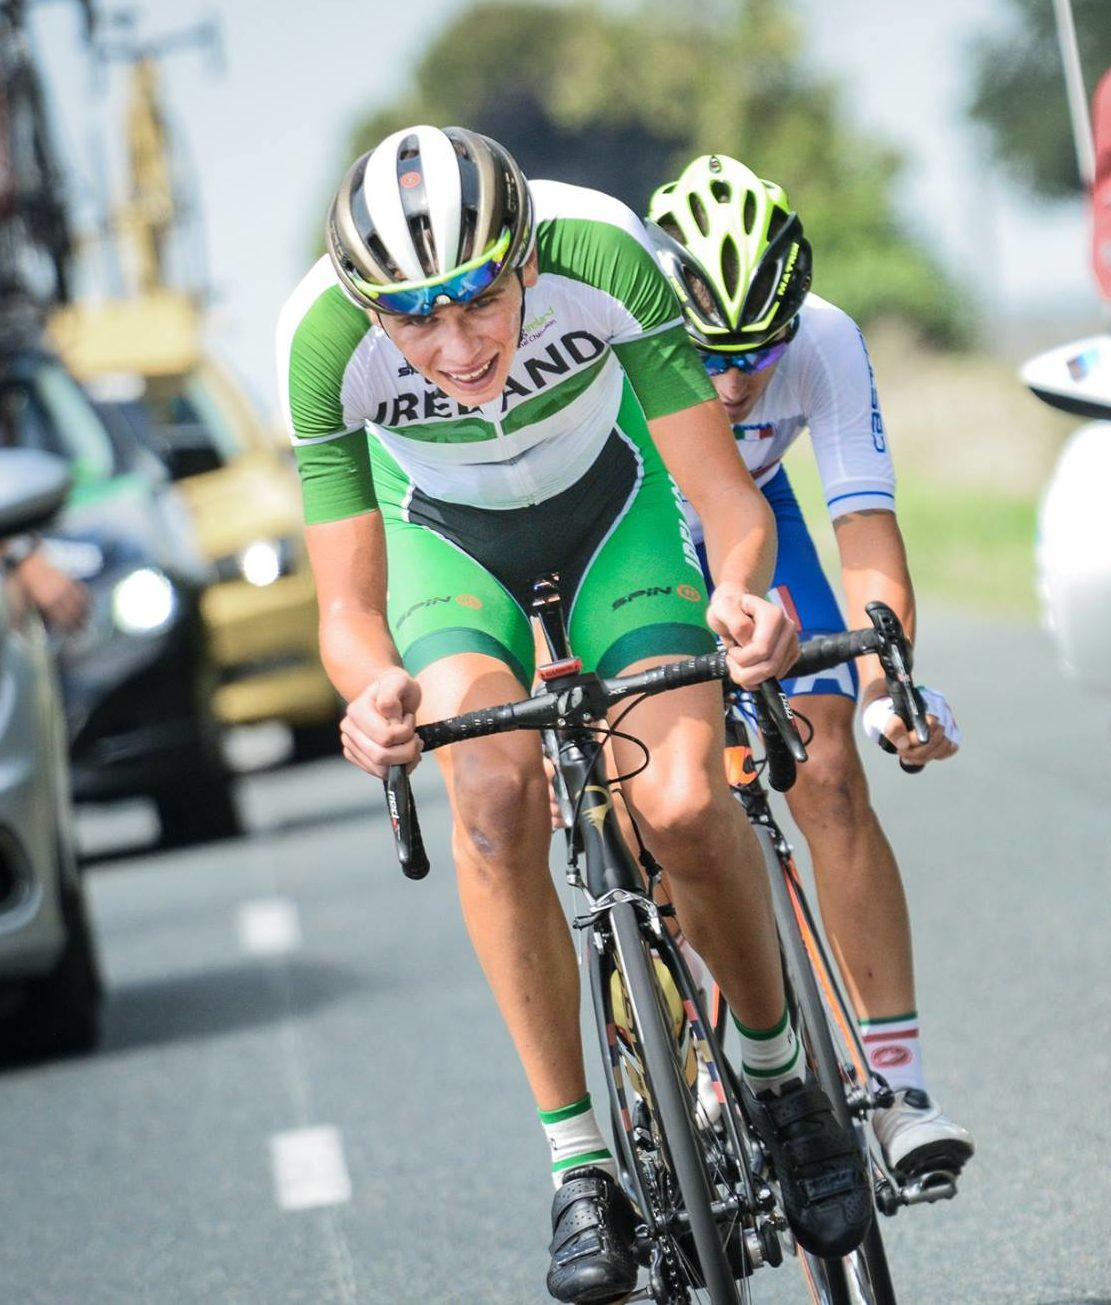 6fd88bcad5b The Irish team is in action at the U23 Tour of Flanders and you can watch  it here right now.